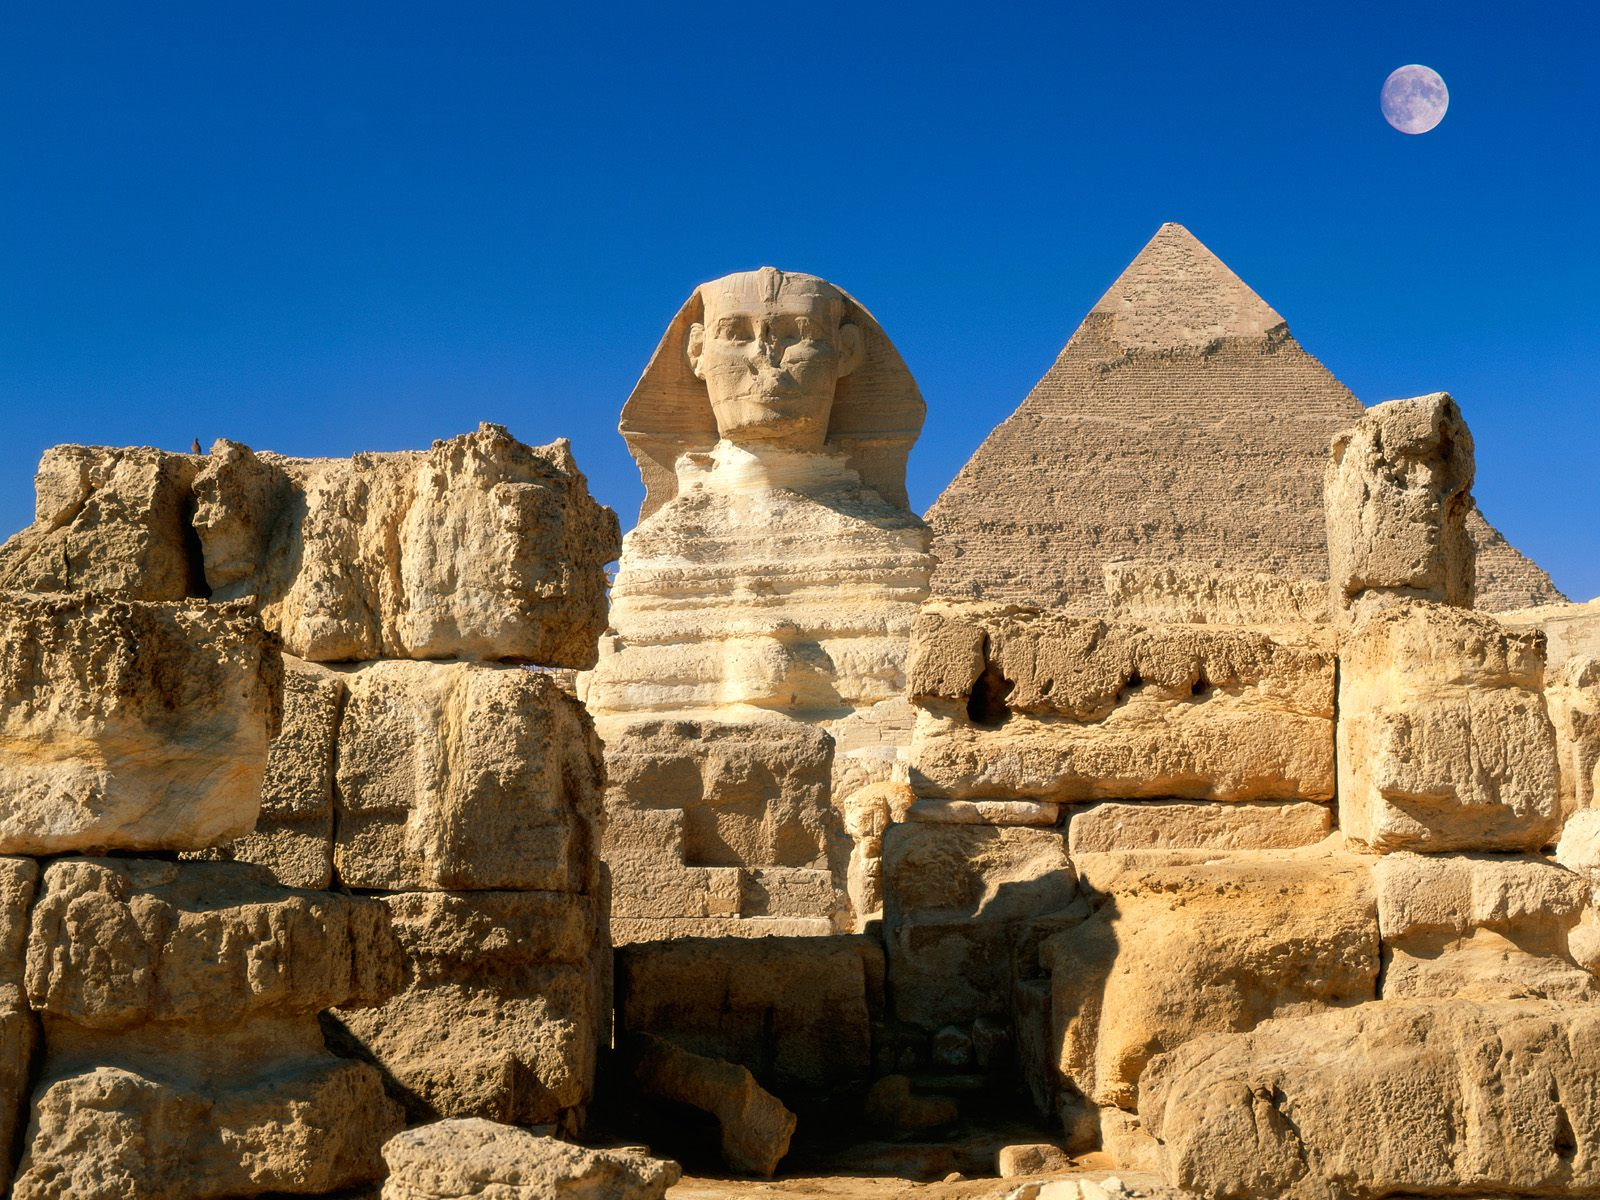 http://kollin.hu/amazingplaces/places/Great%20Sphinx,%20Chephren%20Pyramid,%20Giza,%20Egypt.jpg